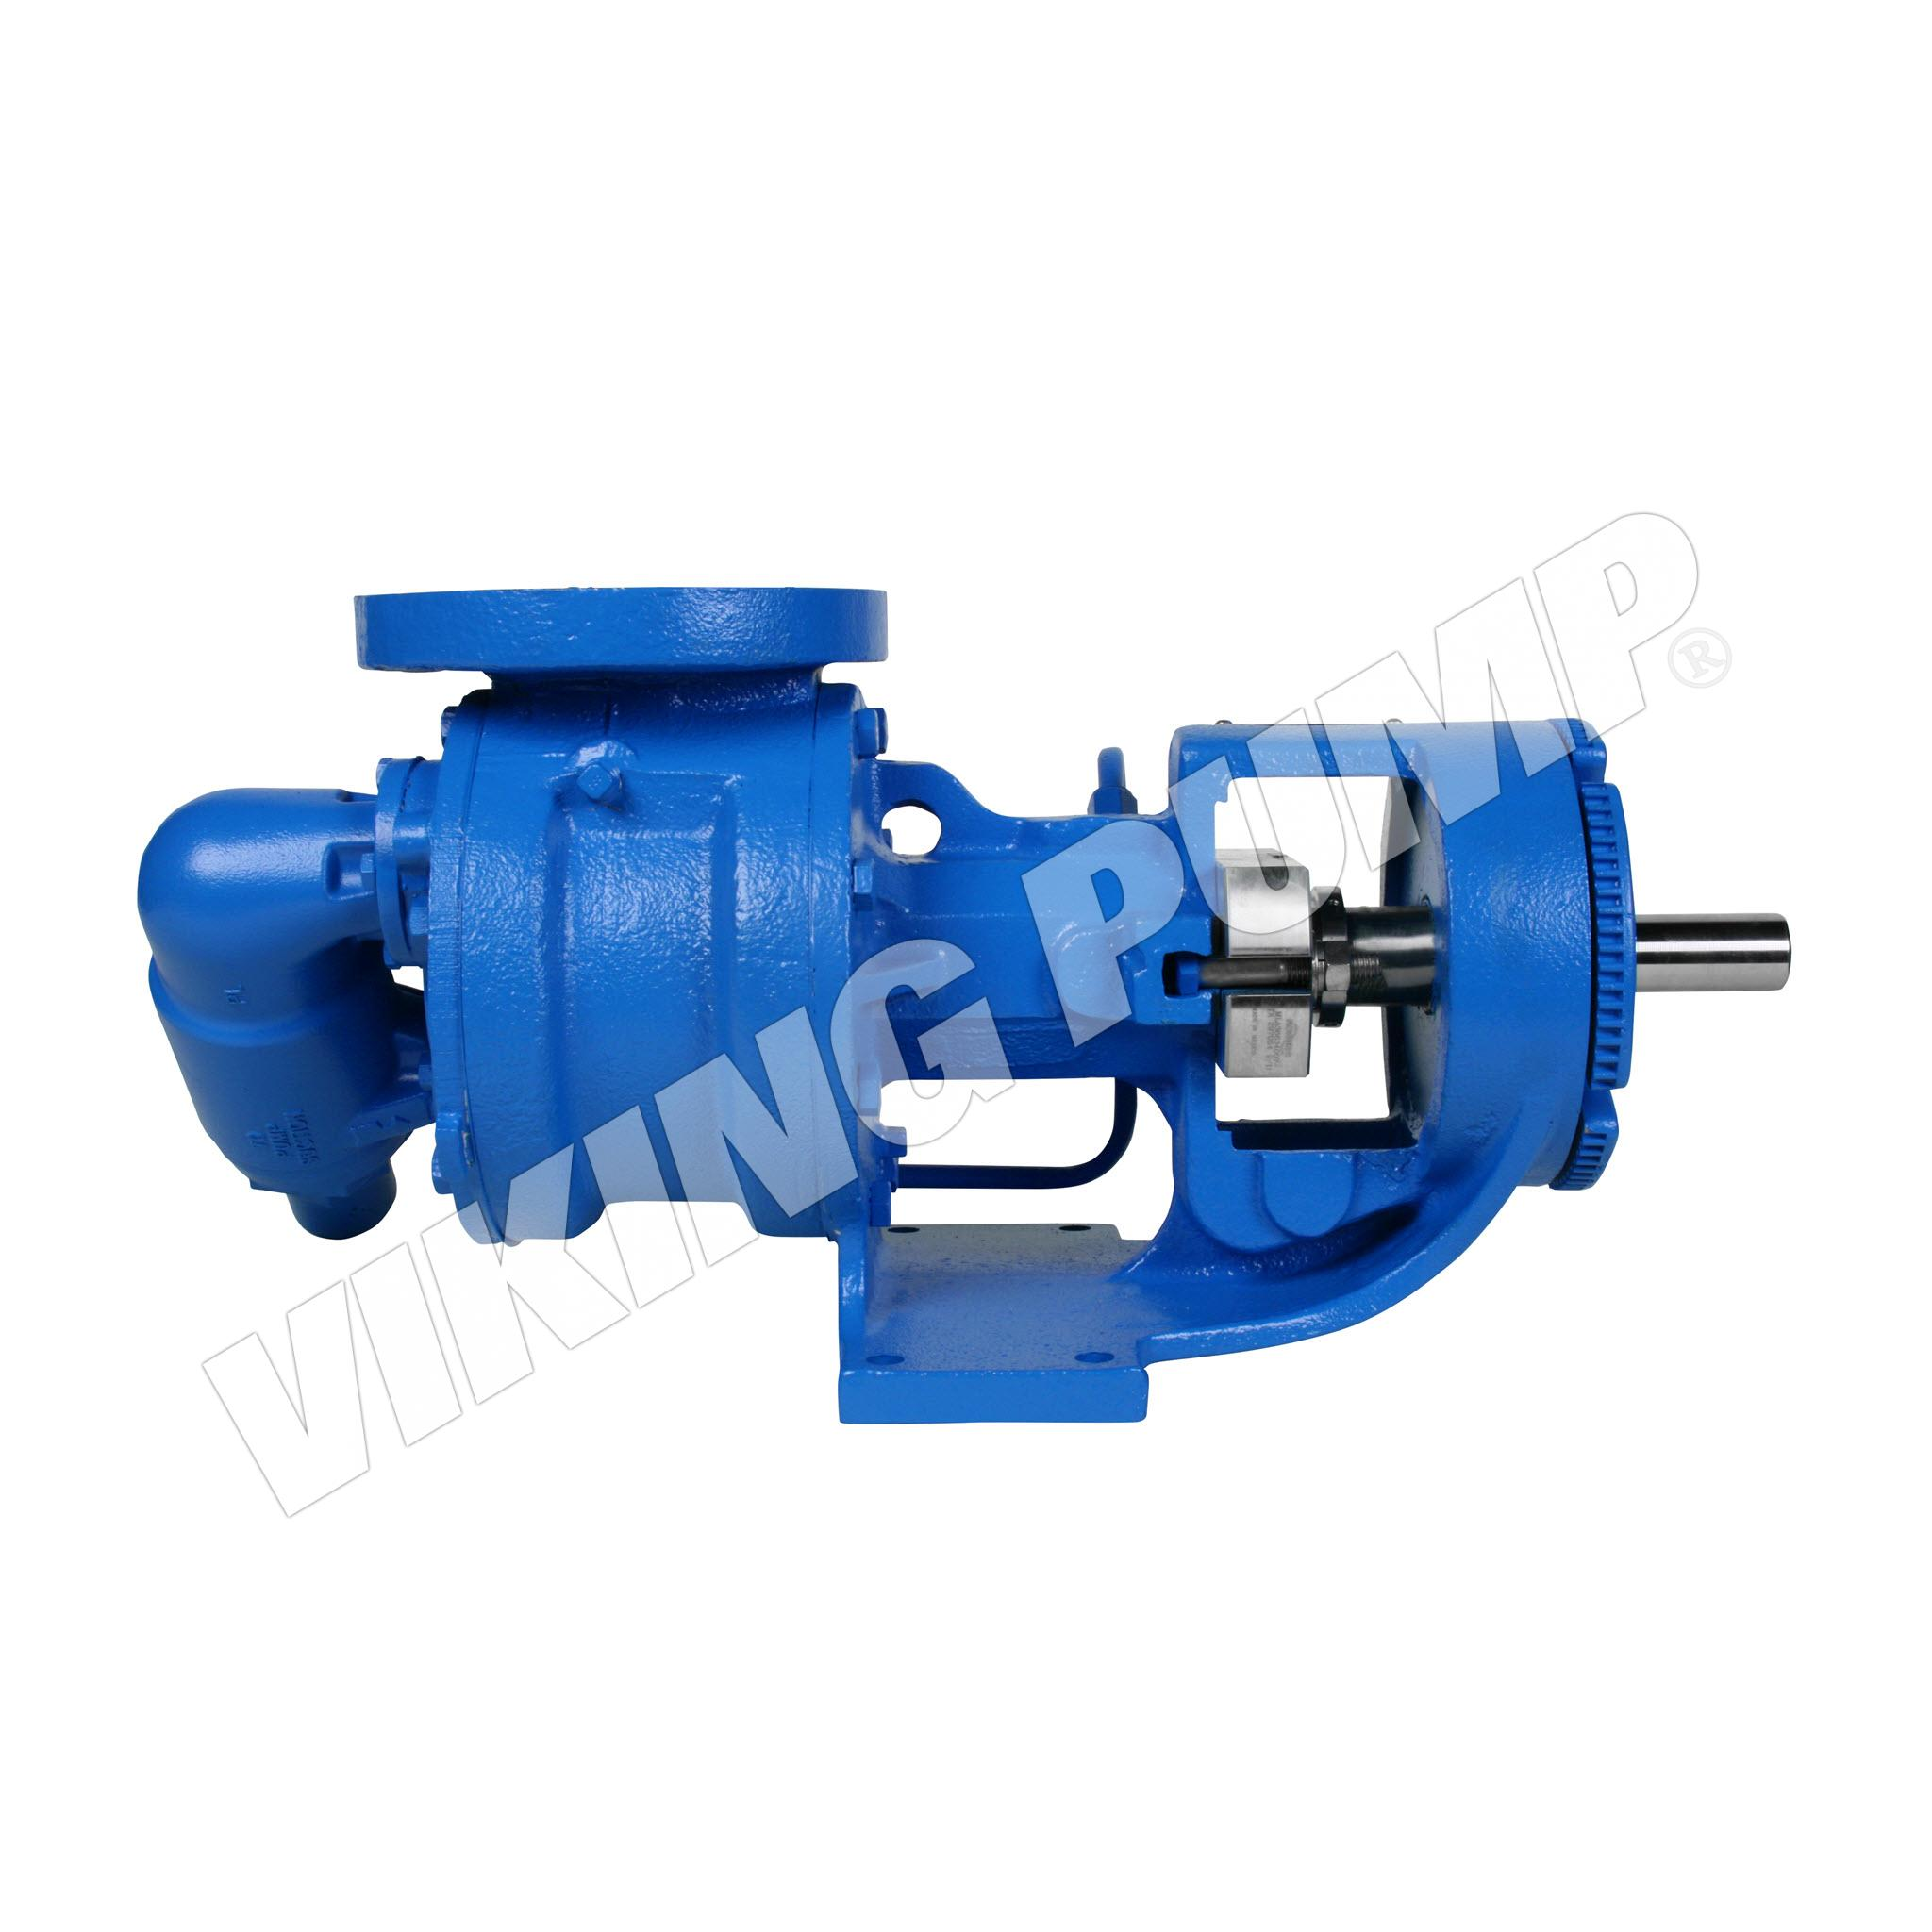 Model KK4127A, Foot Mounted, Cartridge Seal, Relief Valve Pump